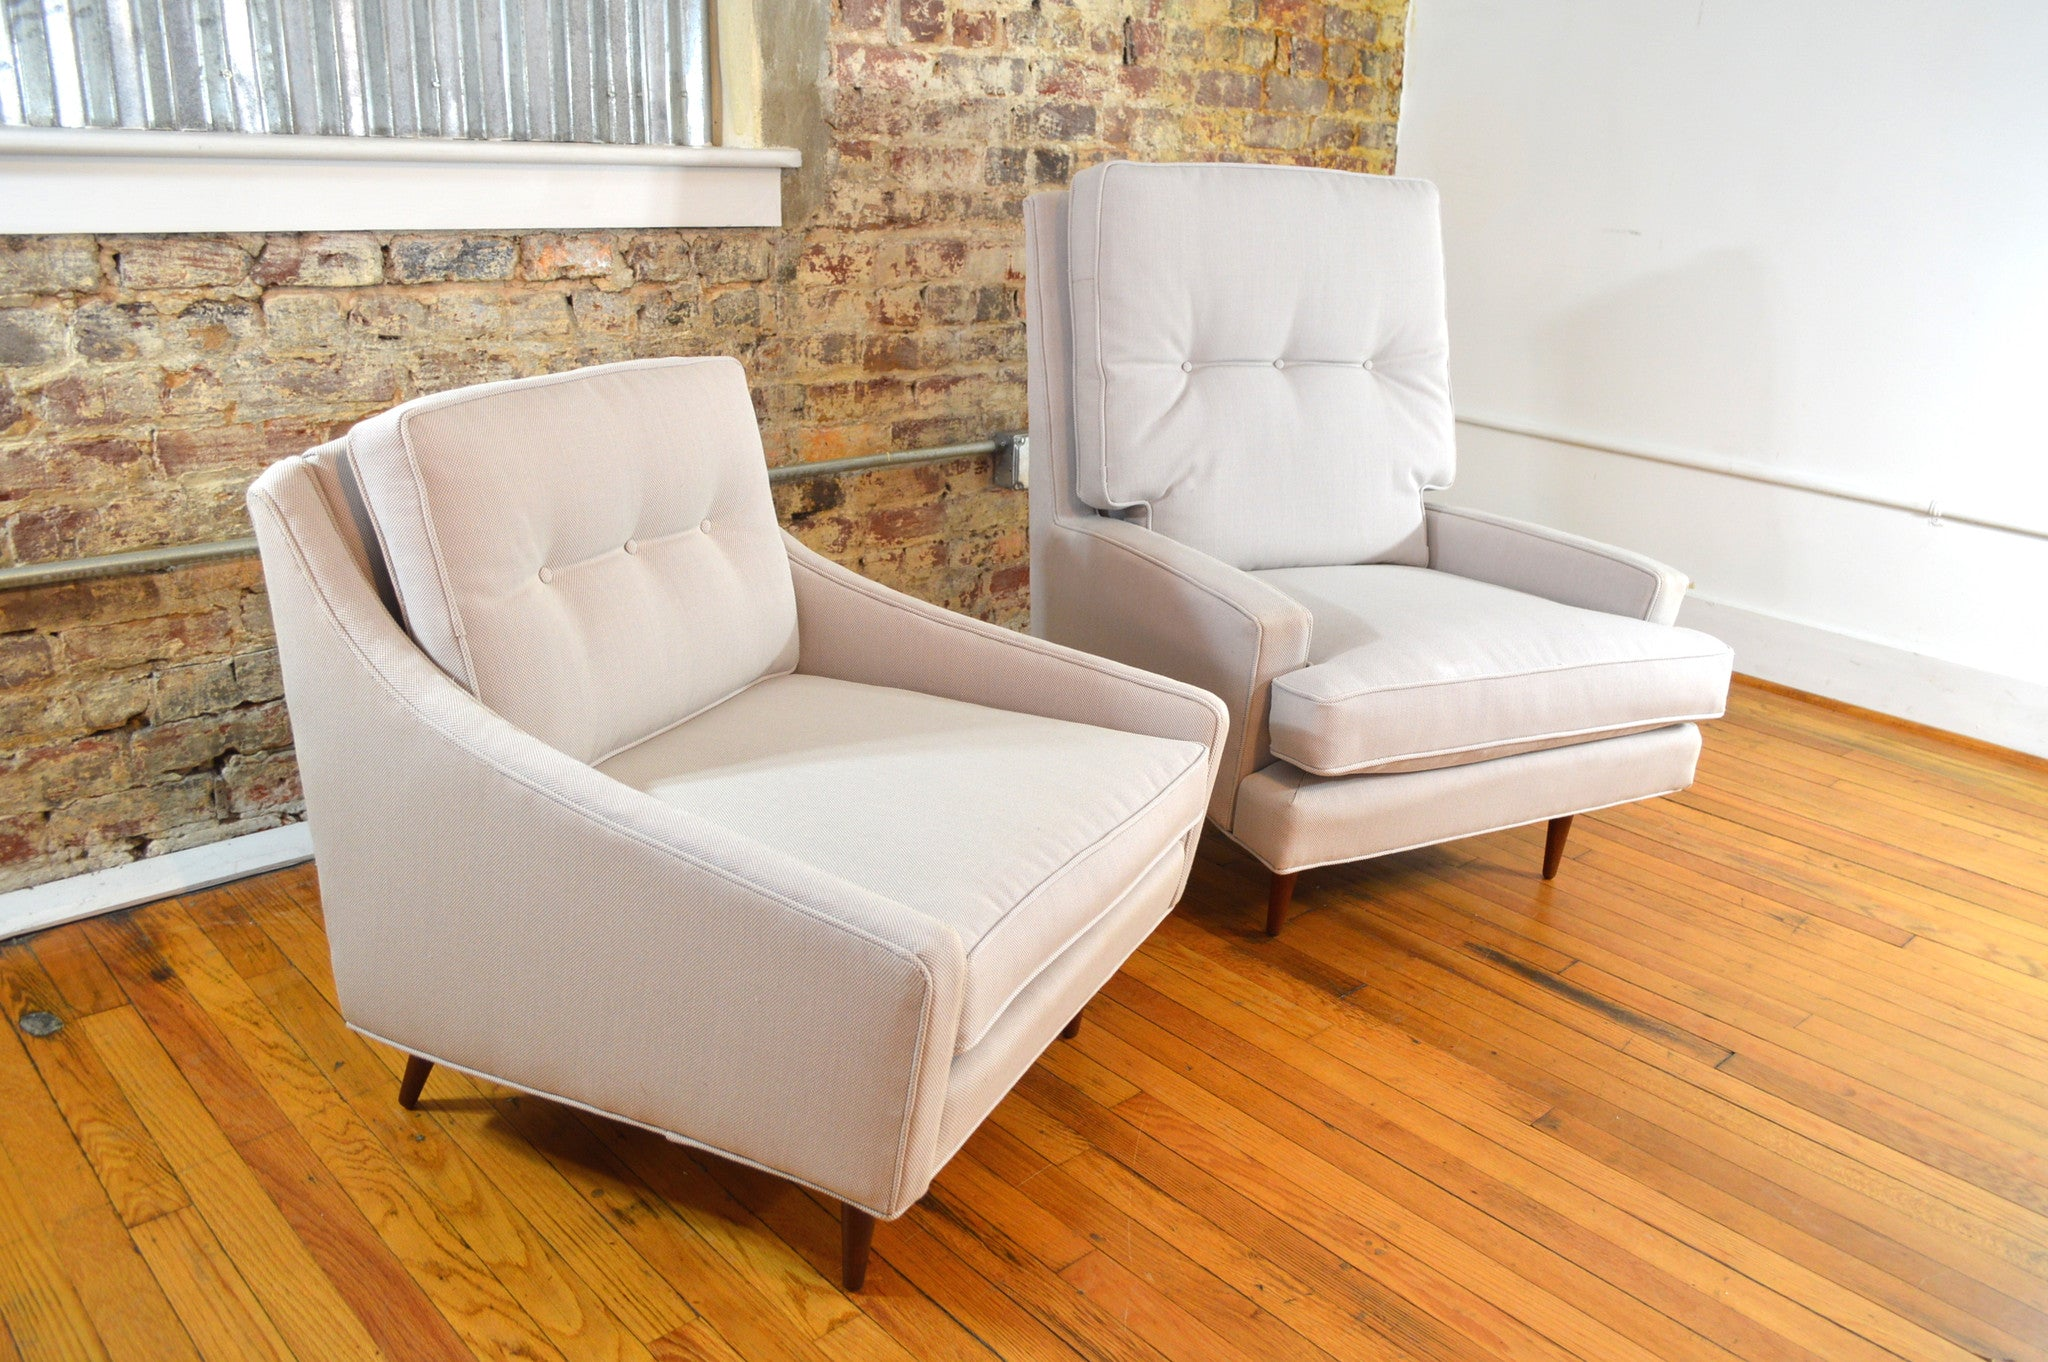 Milo Baughman Lounge Chairs King and Queen Set for James Inc